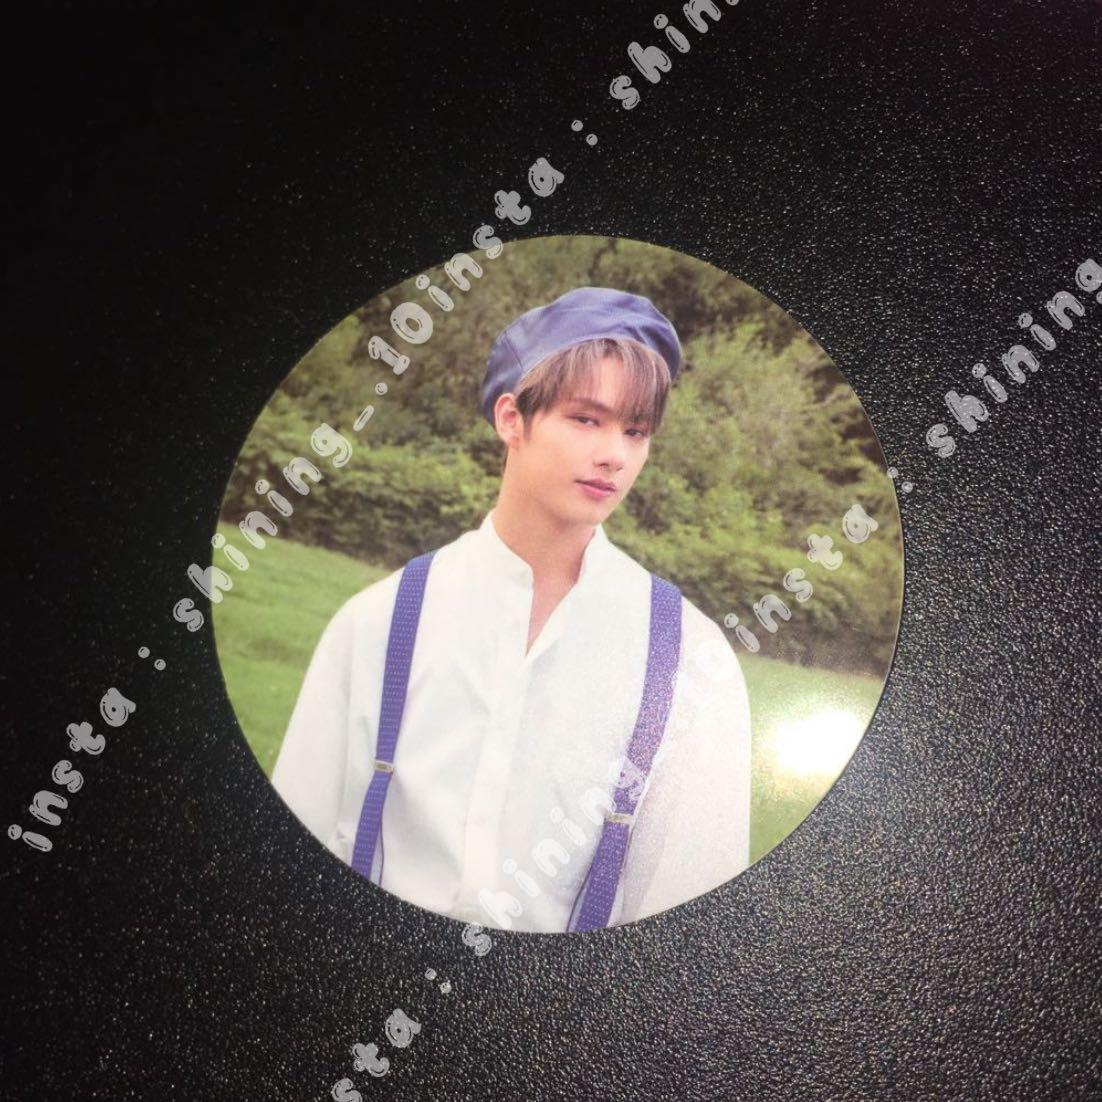 [WTT/WTS]seventeen JUN AN ODE HOPE VER FIRST PRESS STICKER